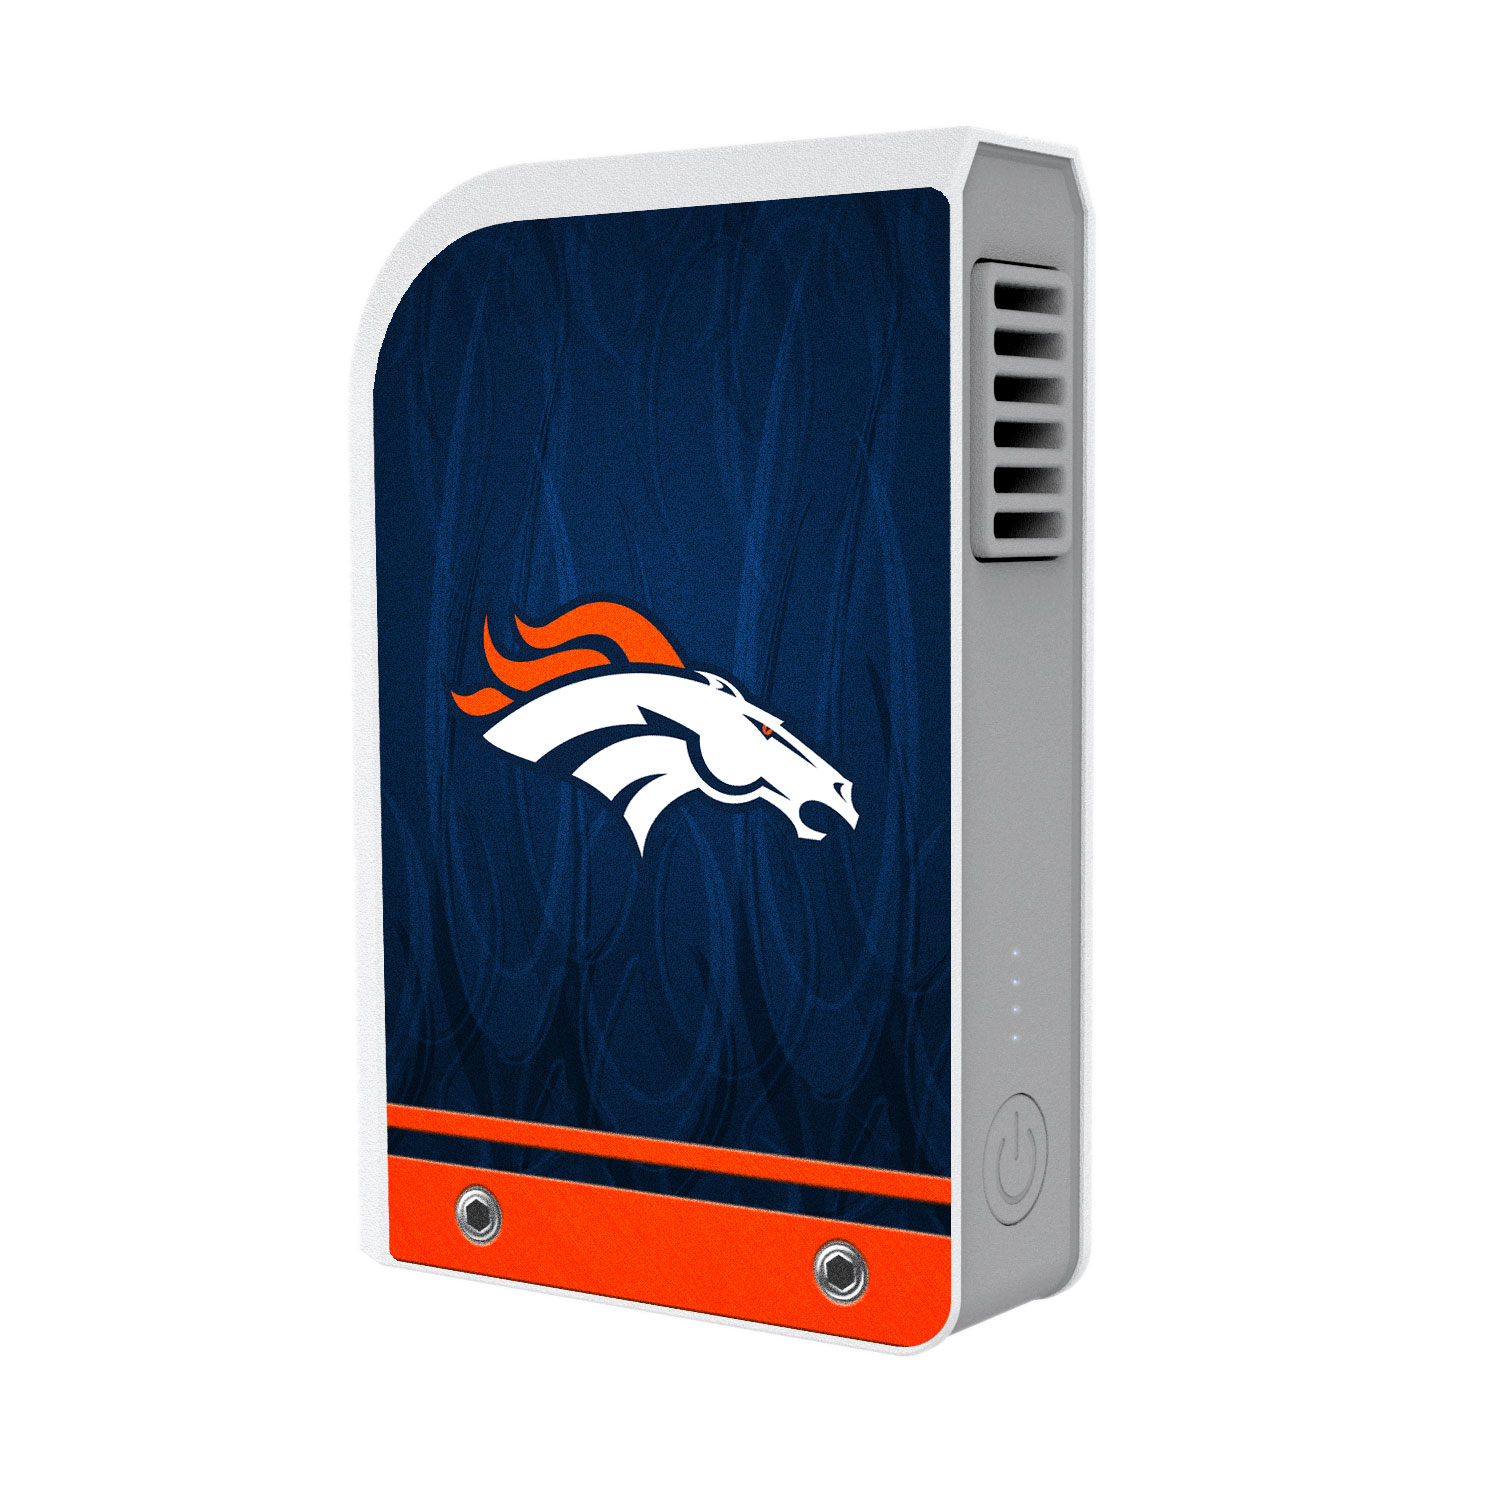 Denver Broncos 6000 mAh Phone Charging Powerbank & Personal Fan